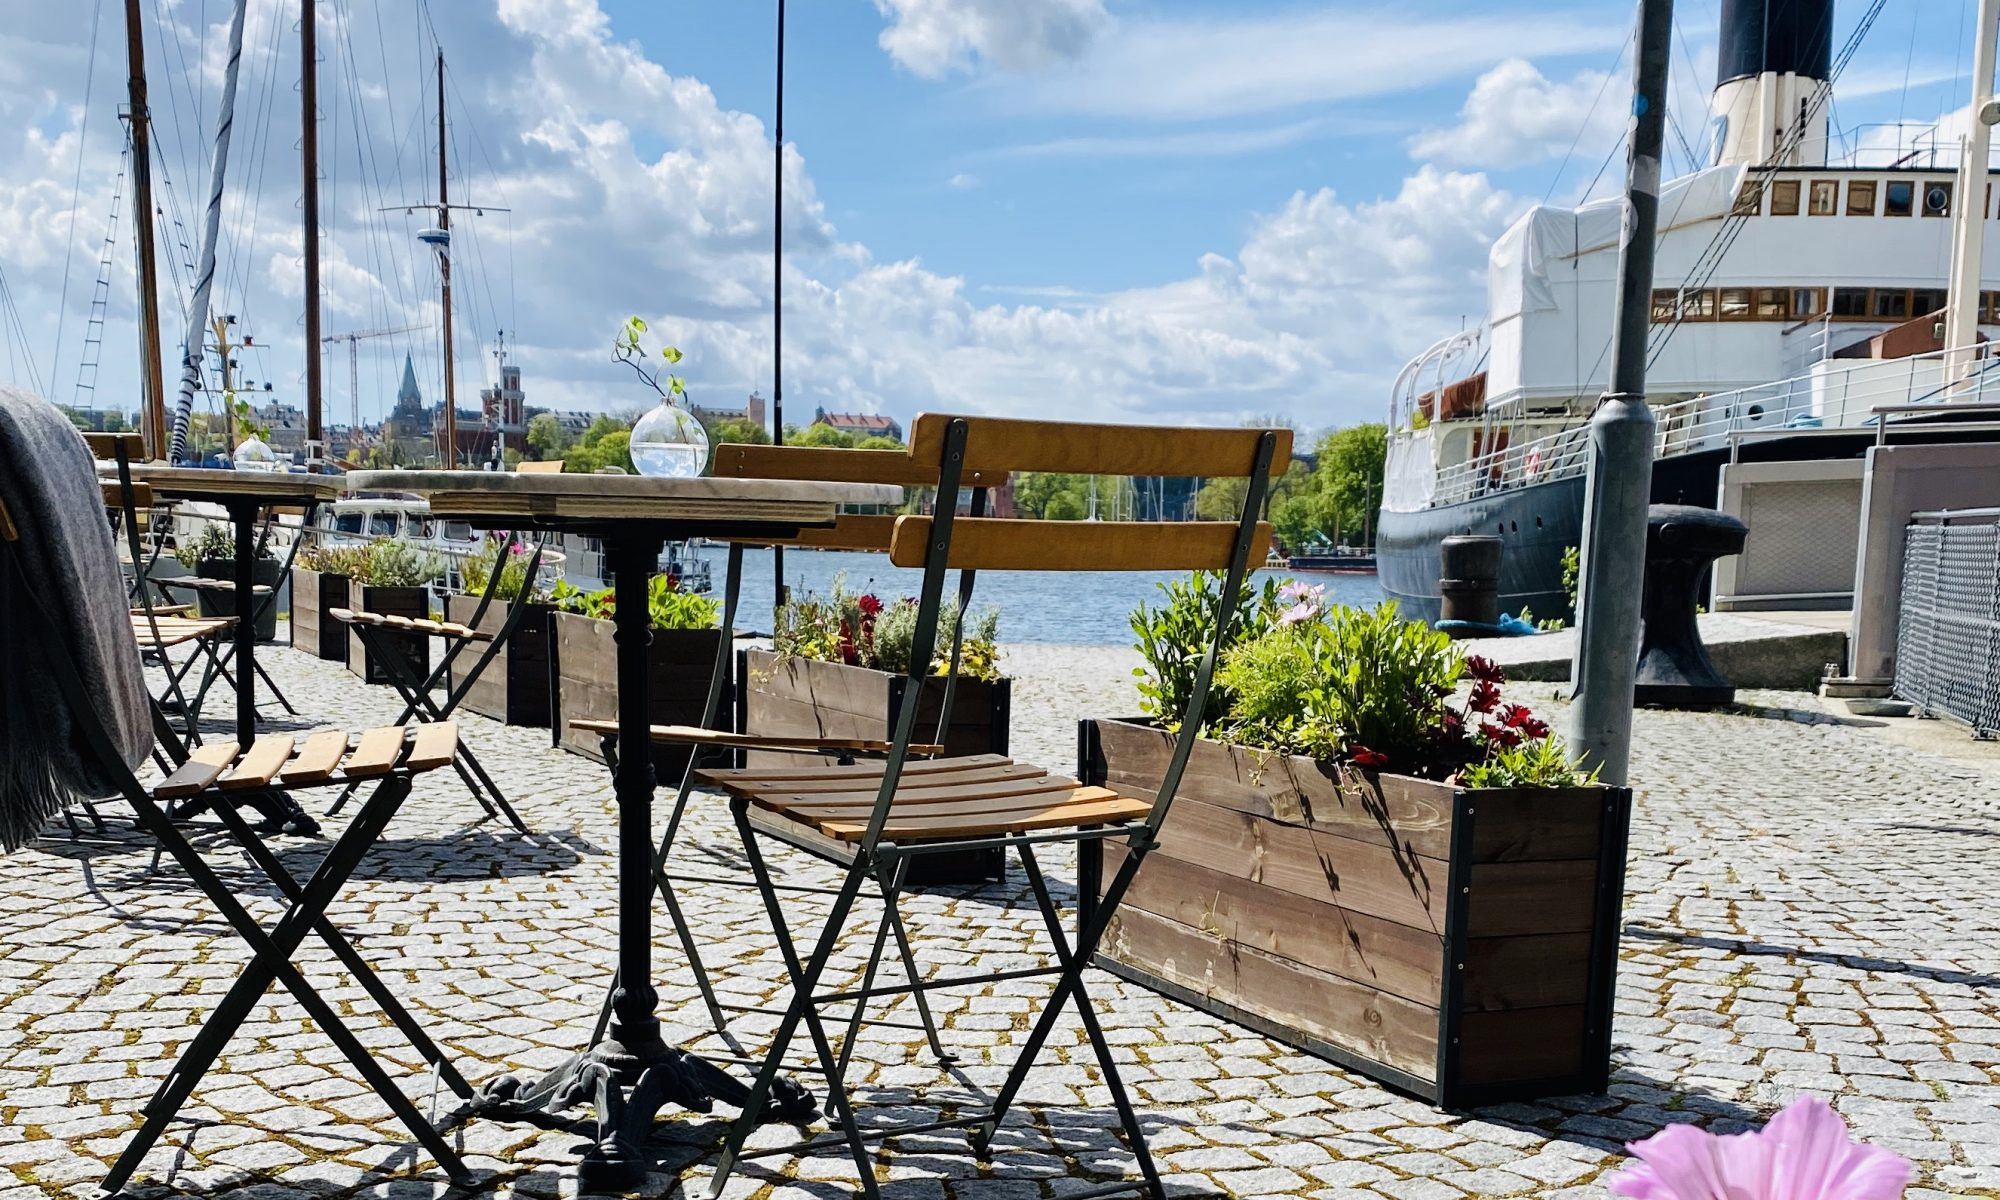 Djurgården – a place for foodies